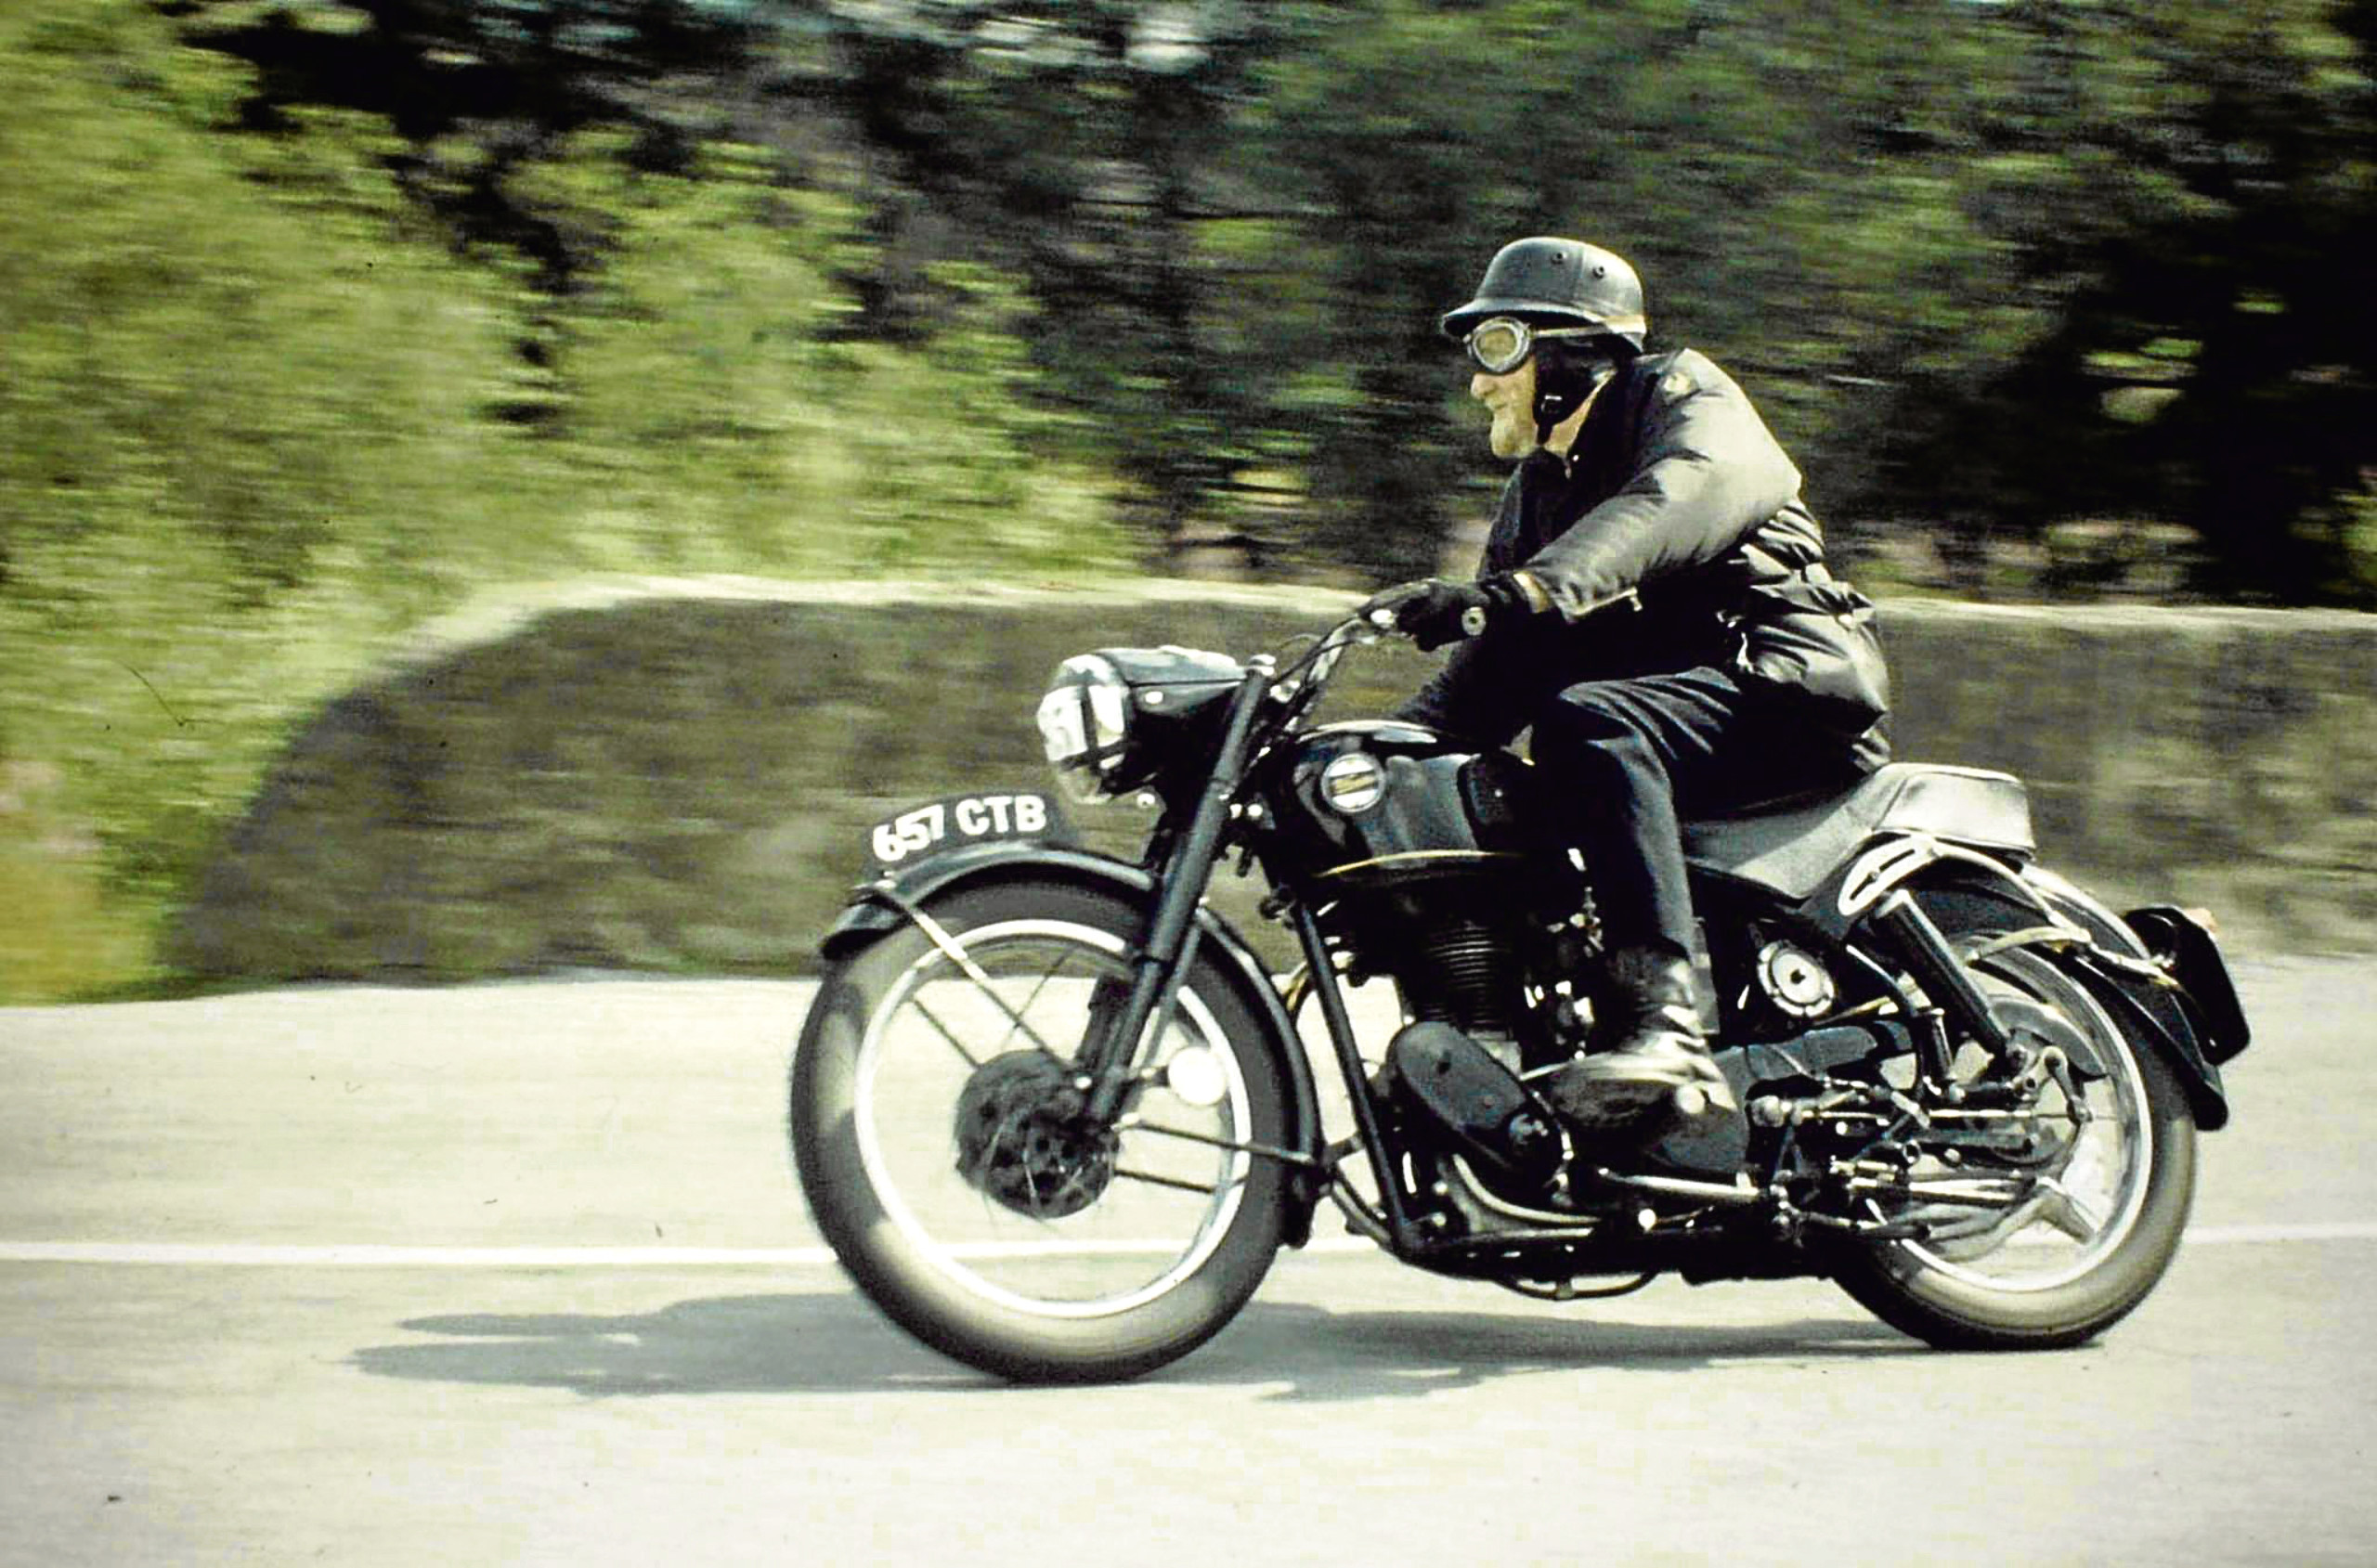 The 42nd Scottish National Assembly of Vintage Motorcycles will be held at Blairgowrie Rugby Ground this weekend.